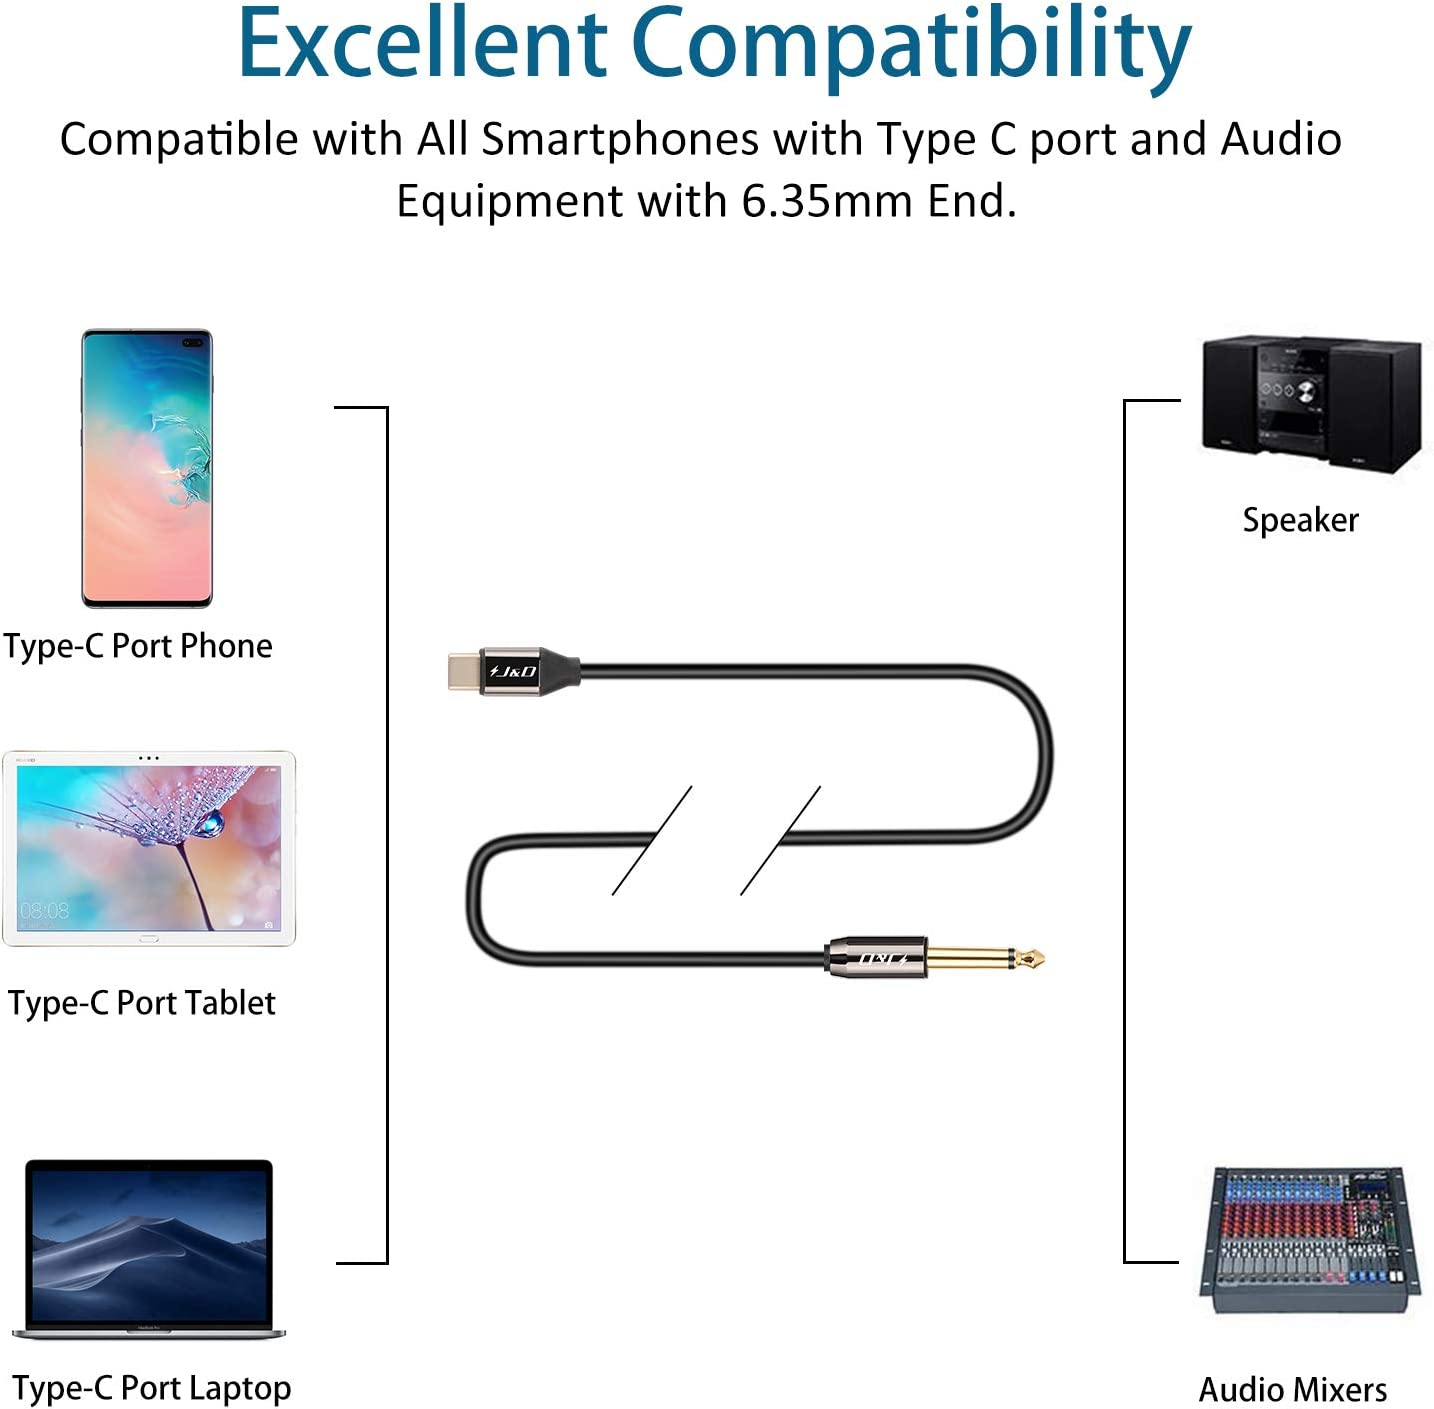 Gold Plated USB Type C to 6.35mm 1//4 inch Male TS Mono Interconnect PVC Shelled Aux Adapter Cable J/&D USB-C to 6.35mm 1//4 inch TS Audio Cable 3.3 Feet